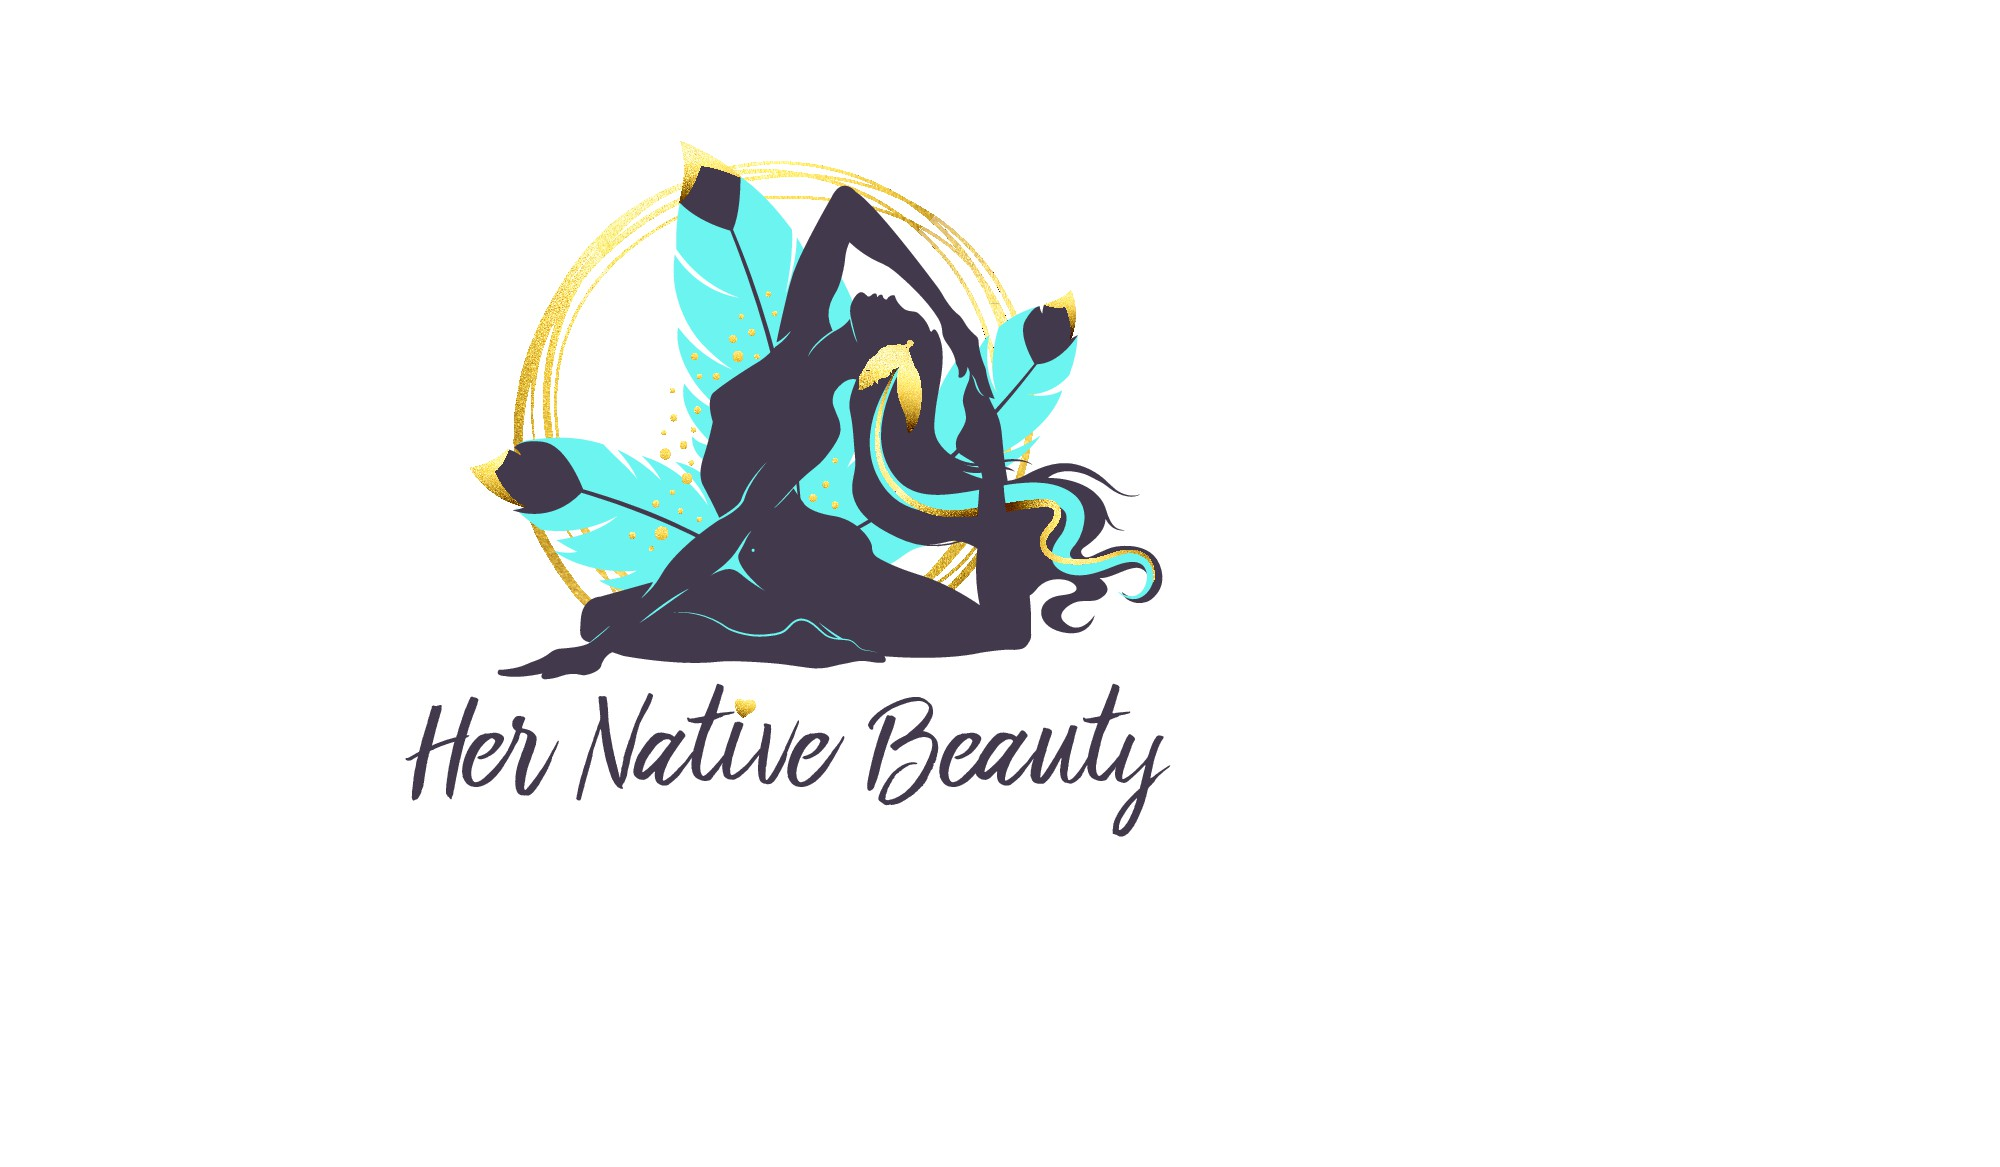 Soul-inspired Personal Training and Yoga Biz for Women Needs a Logo